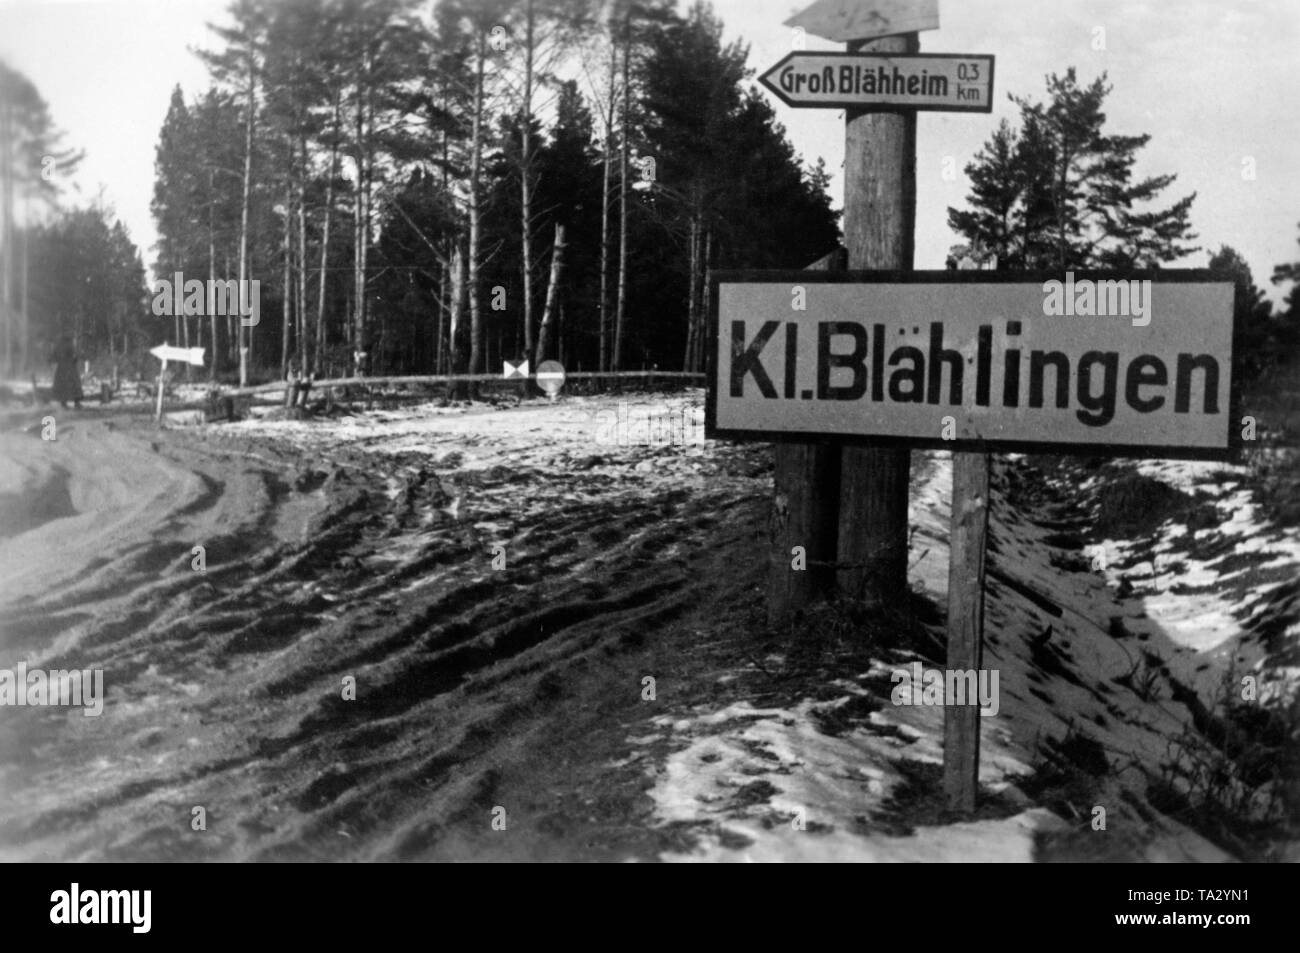 Soldiers of the Wehrmacht changed signposts in the Soviet Union. The two towns of Kl. Blaehlingen and Gross Blaehheim were originally winter quarters of the Soviet leadership. Photo: war reporter Beissel. Stock Photo